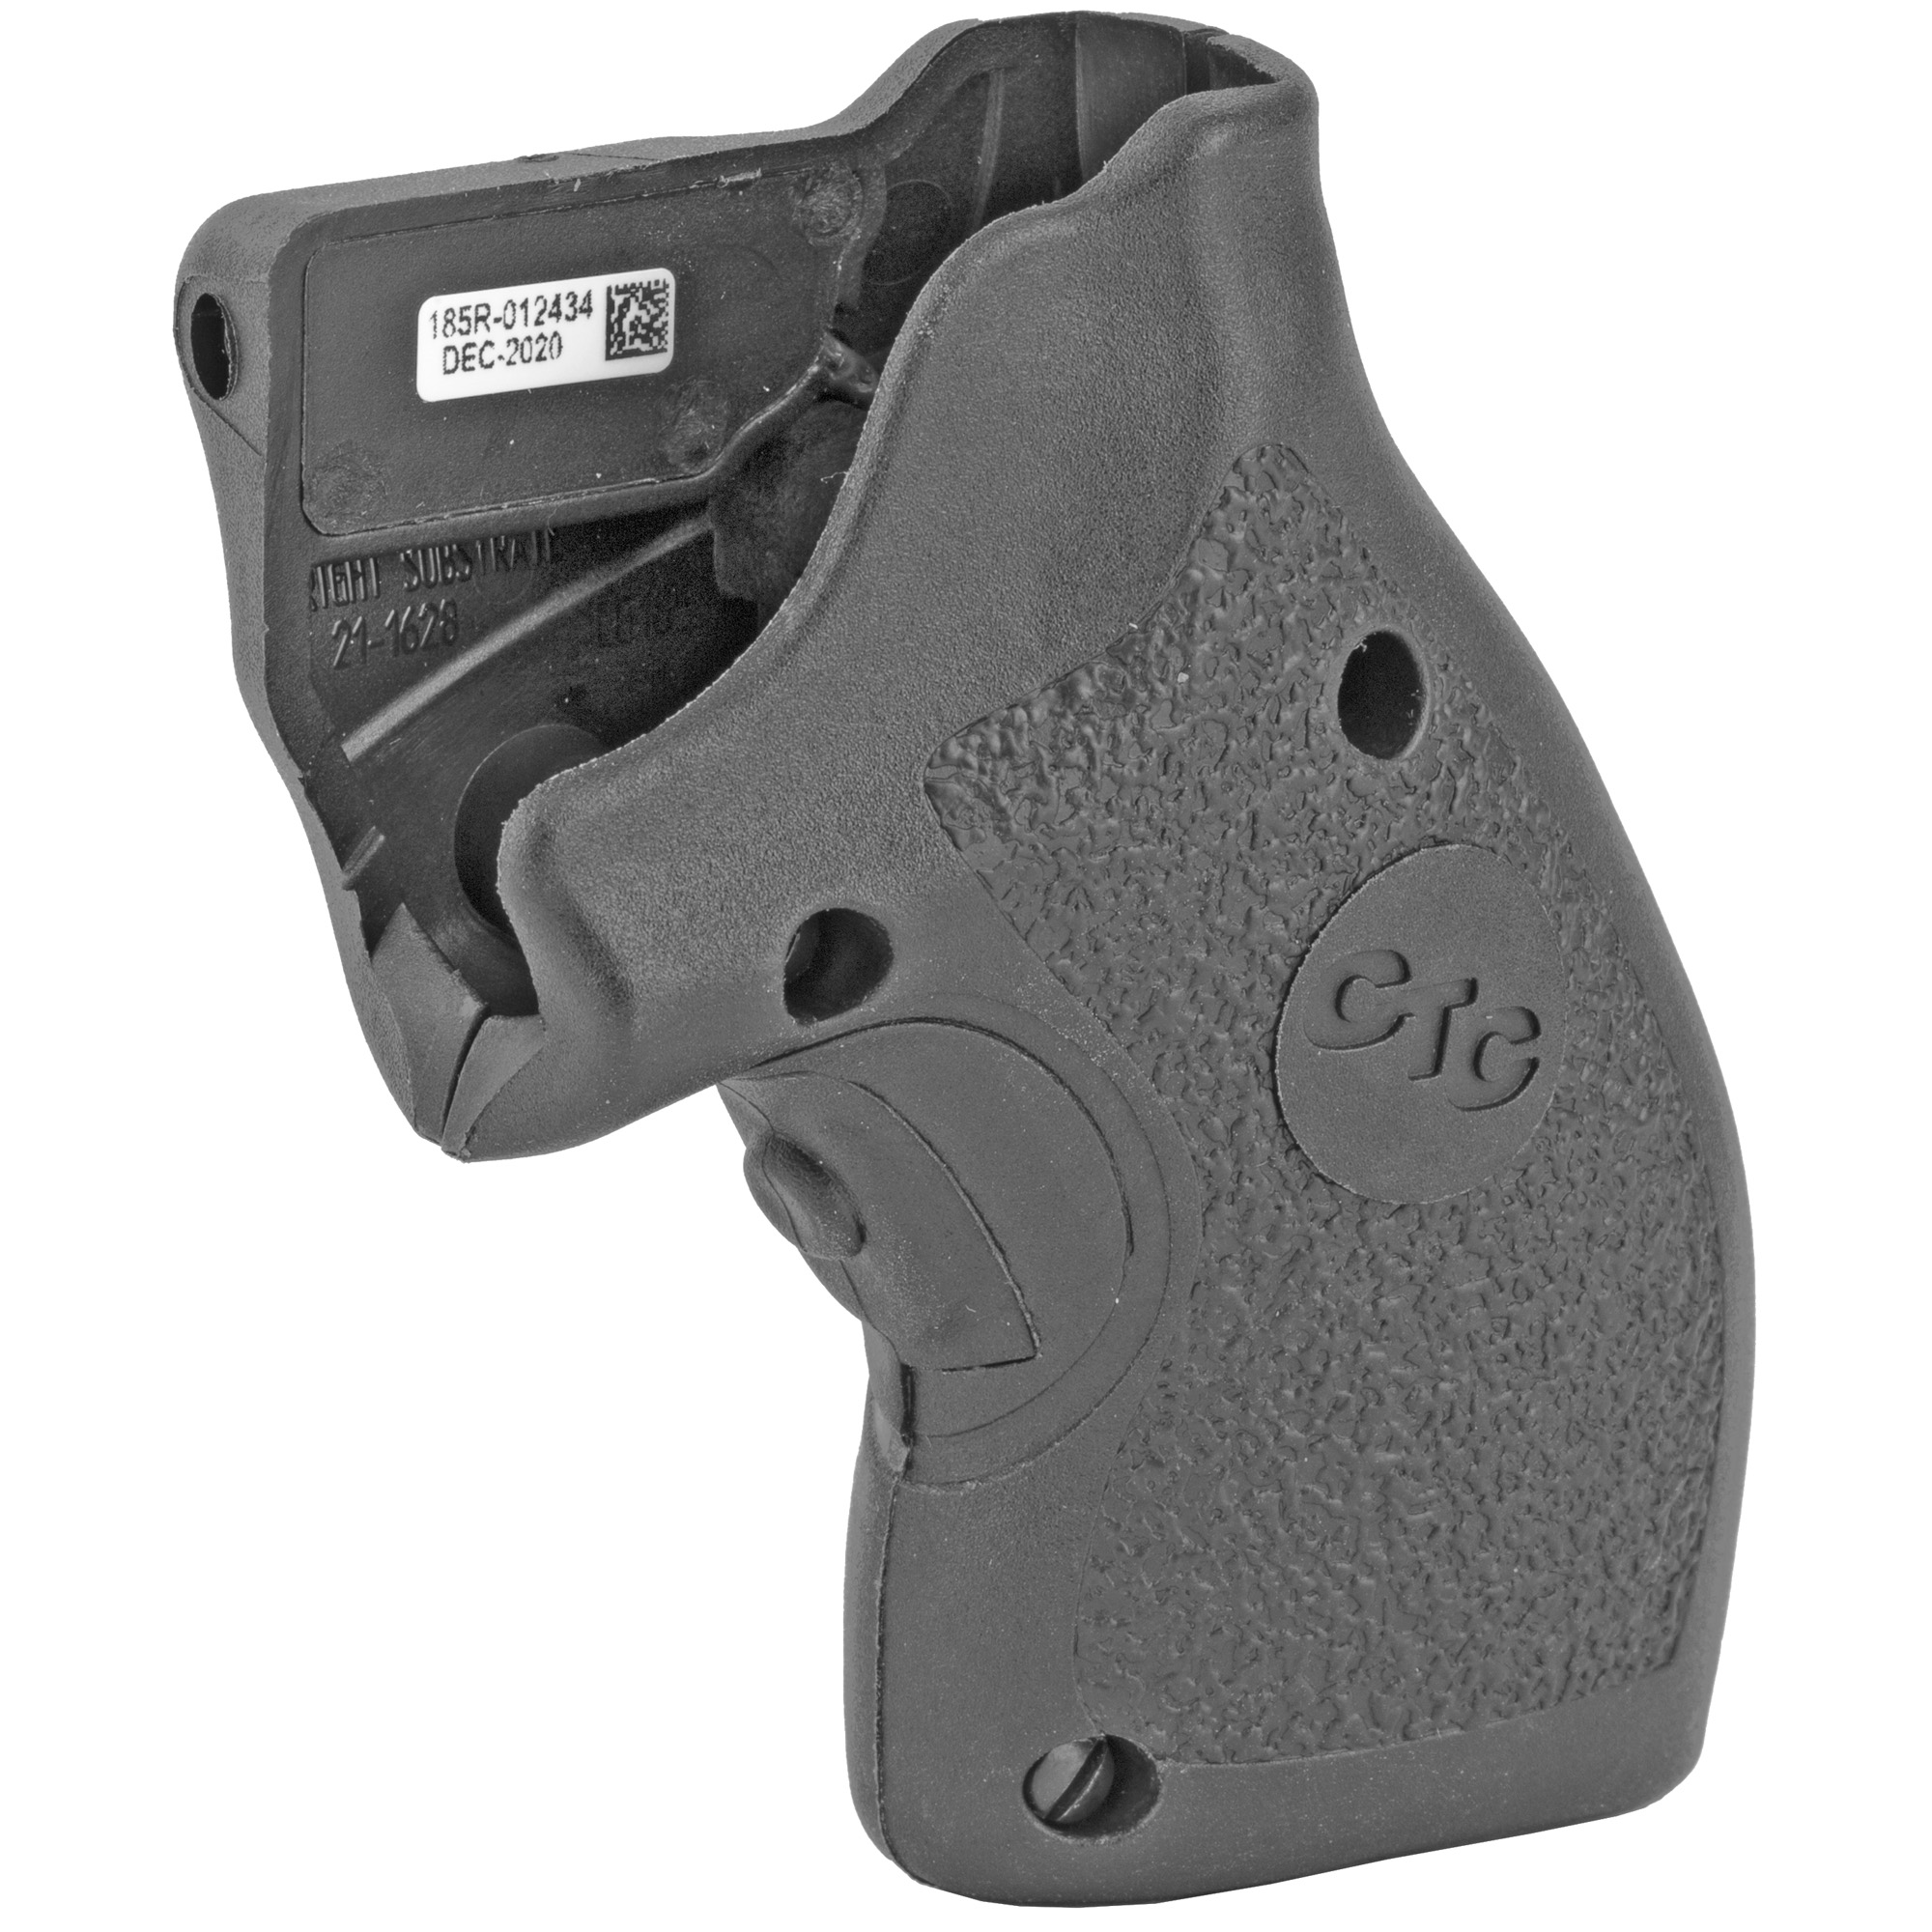 """LG-185 laser sights for Taurus Small Frame revolvers features a hard polymer surface that is rugged and well suited for personal defense. The smooth feel of the polymer provides for a prompt"""" snag-free draw. LG-185 Lasergrips(R) includes the durability"""" sighting adjustments"""" and the defensive advantage that Crimson Trace(R) is known for."""